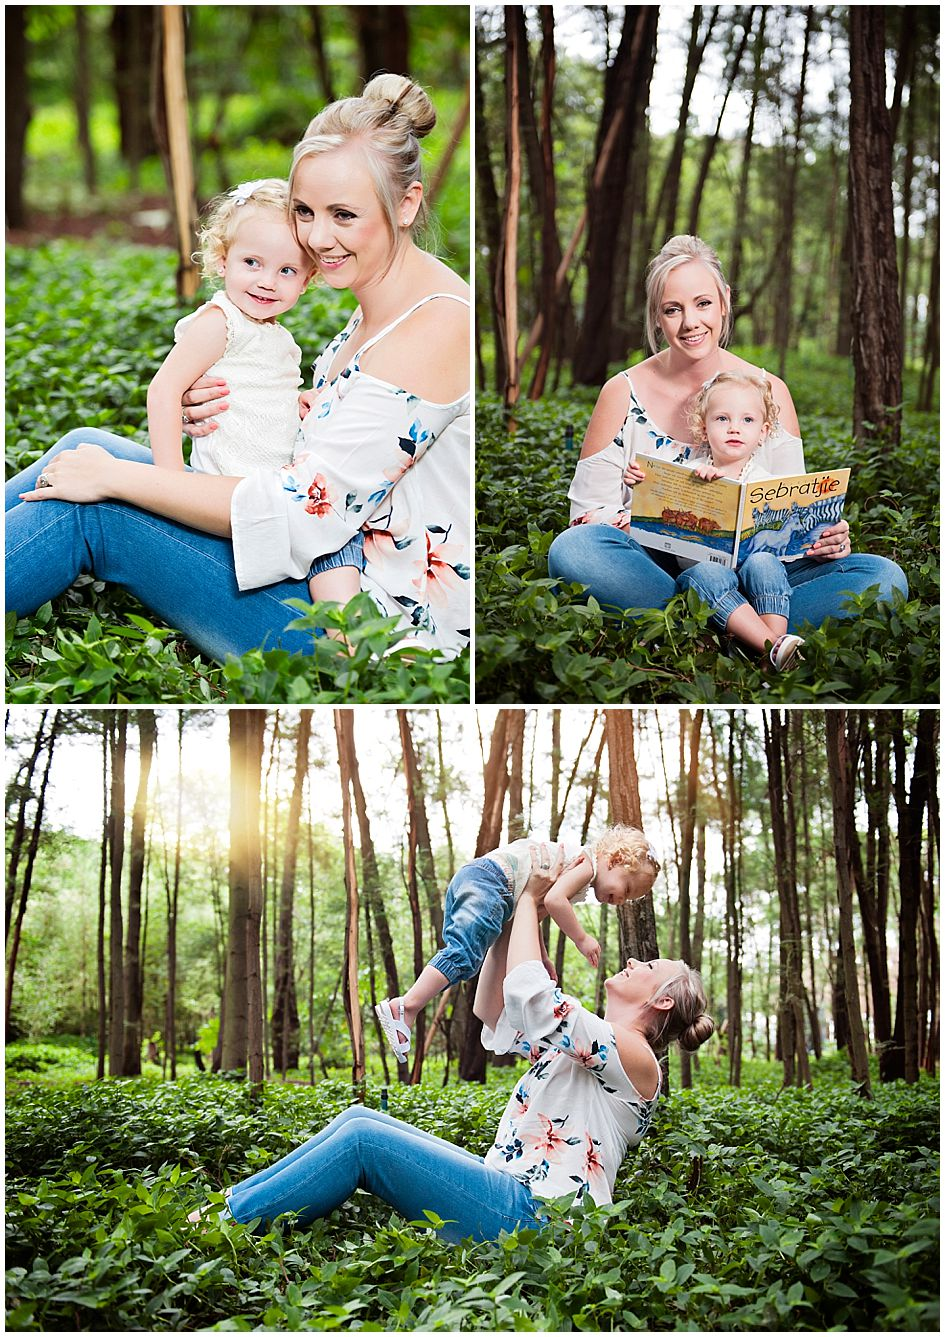 mommy-me-galagos-forest-inspired-shoot.jpg